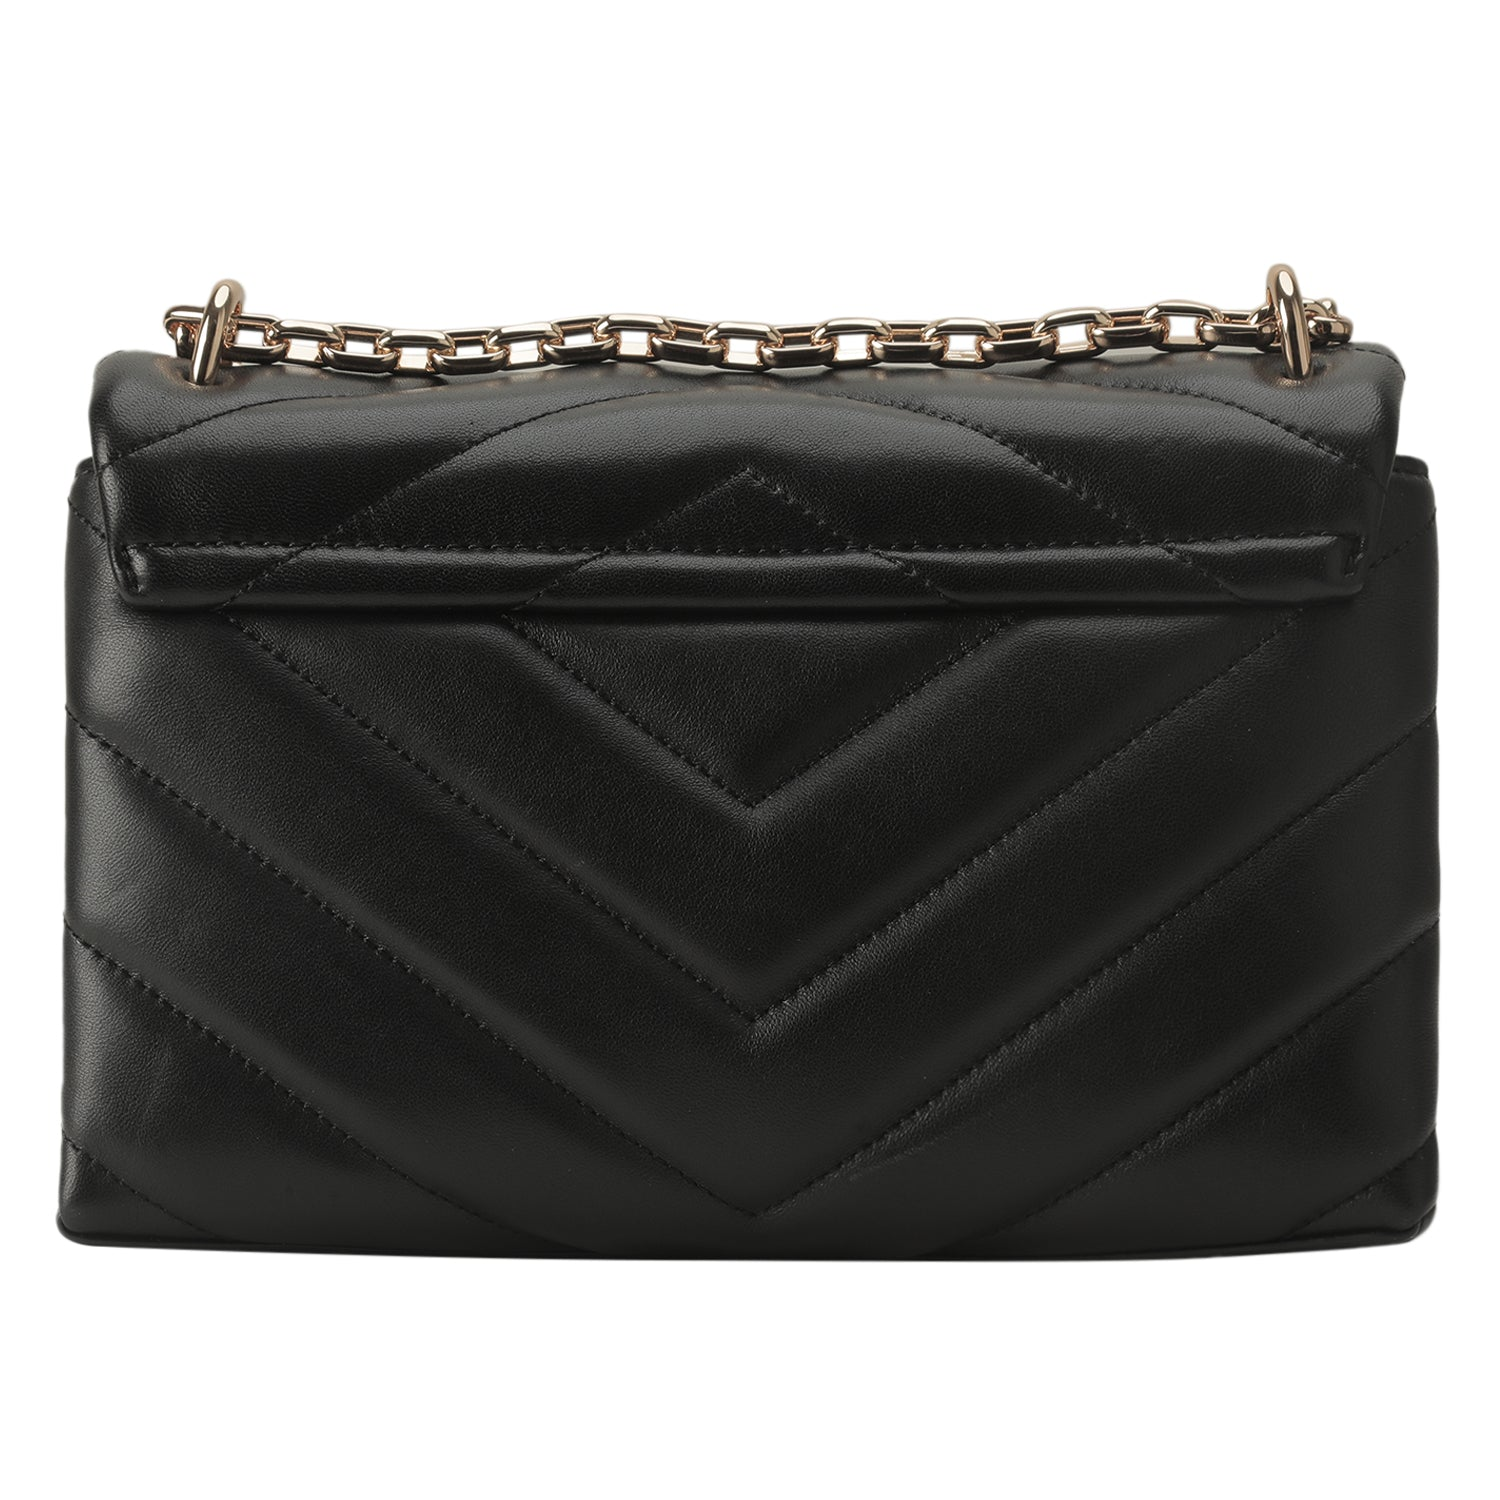 michael kors cece quilted medium bag | shop online at galleriadilux.com